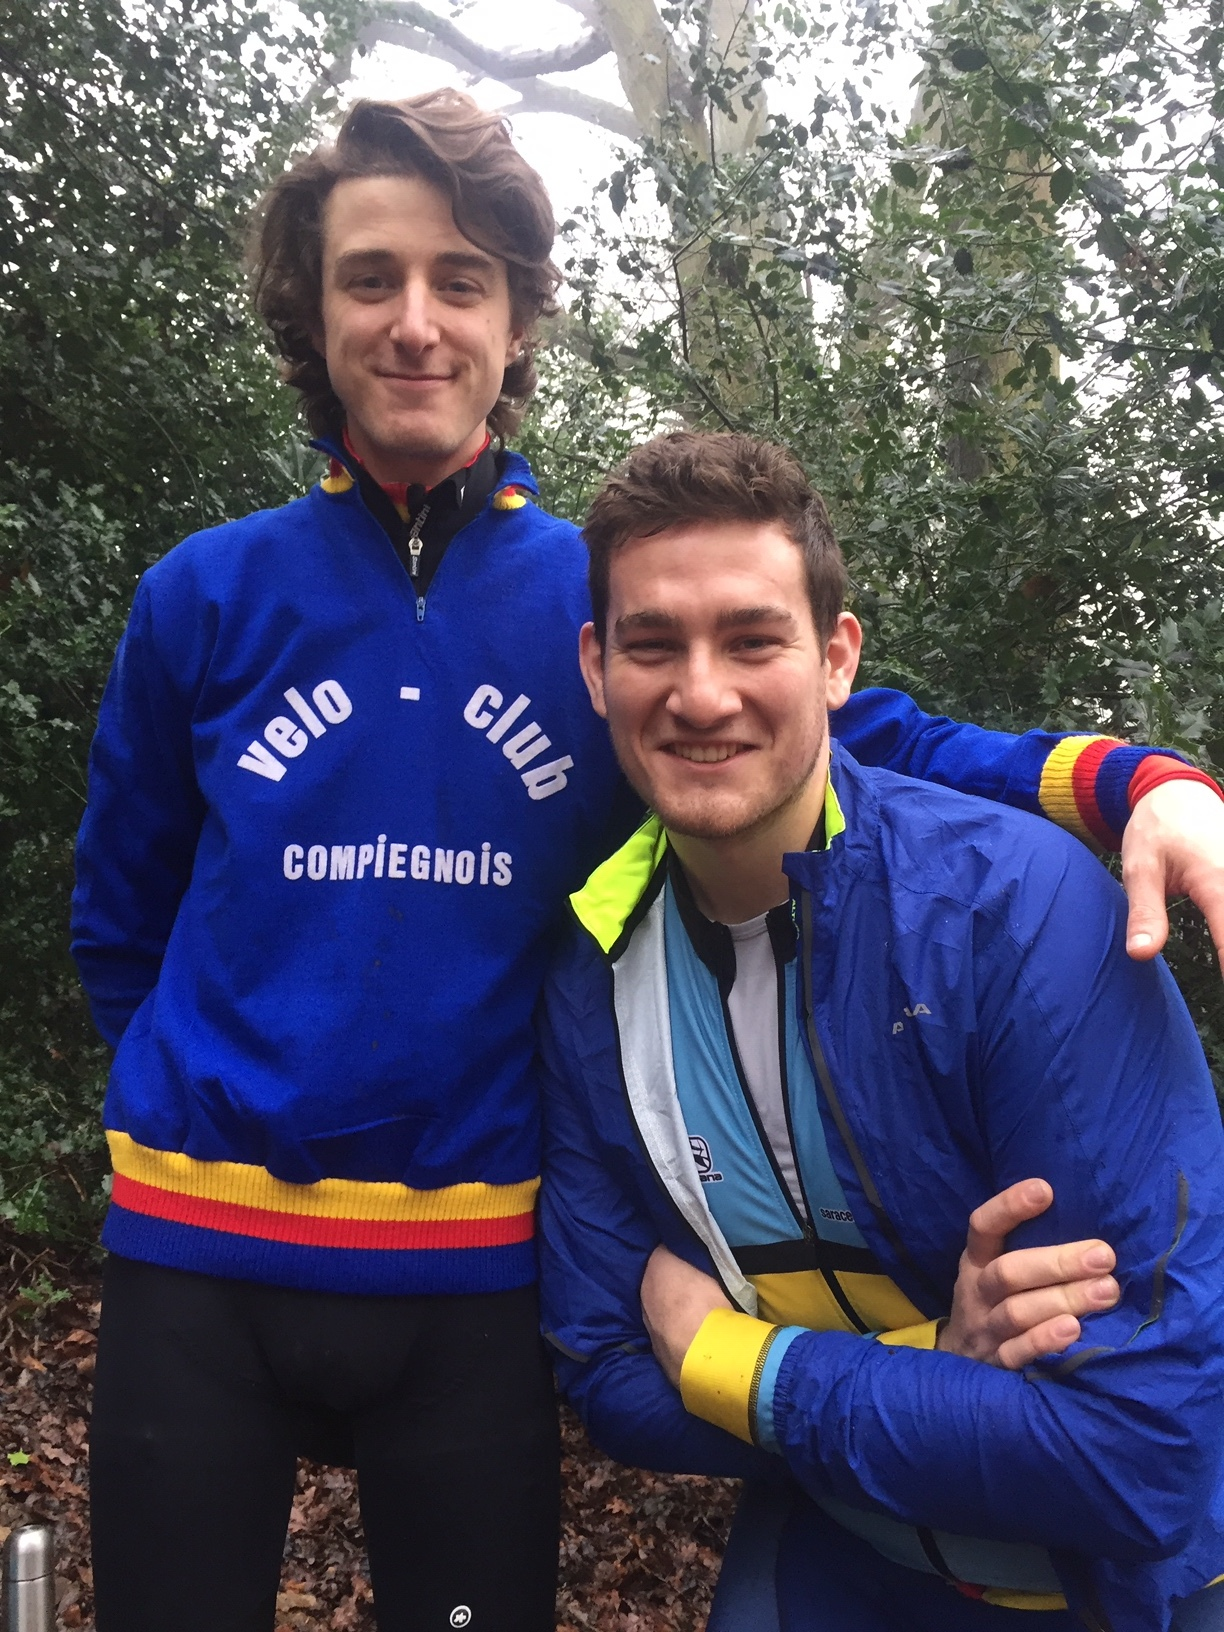 A rare photo of Owen without a hat, sporting a retro wool jersey gifted to us by the late Andy Oliver - a cycling legend in his own right. Owen is stood with our hero of 2018, Ollie Meads, who rose to the challenge and smashed it like a boss.